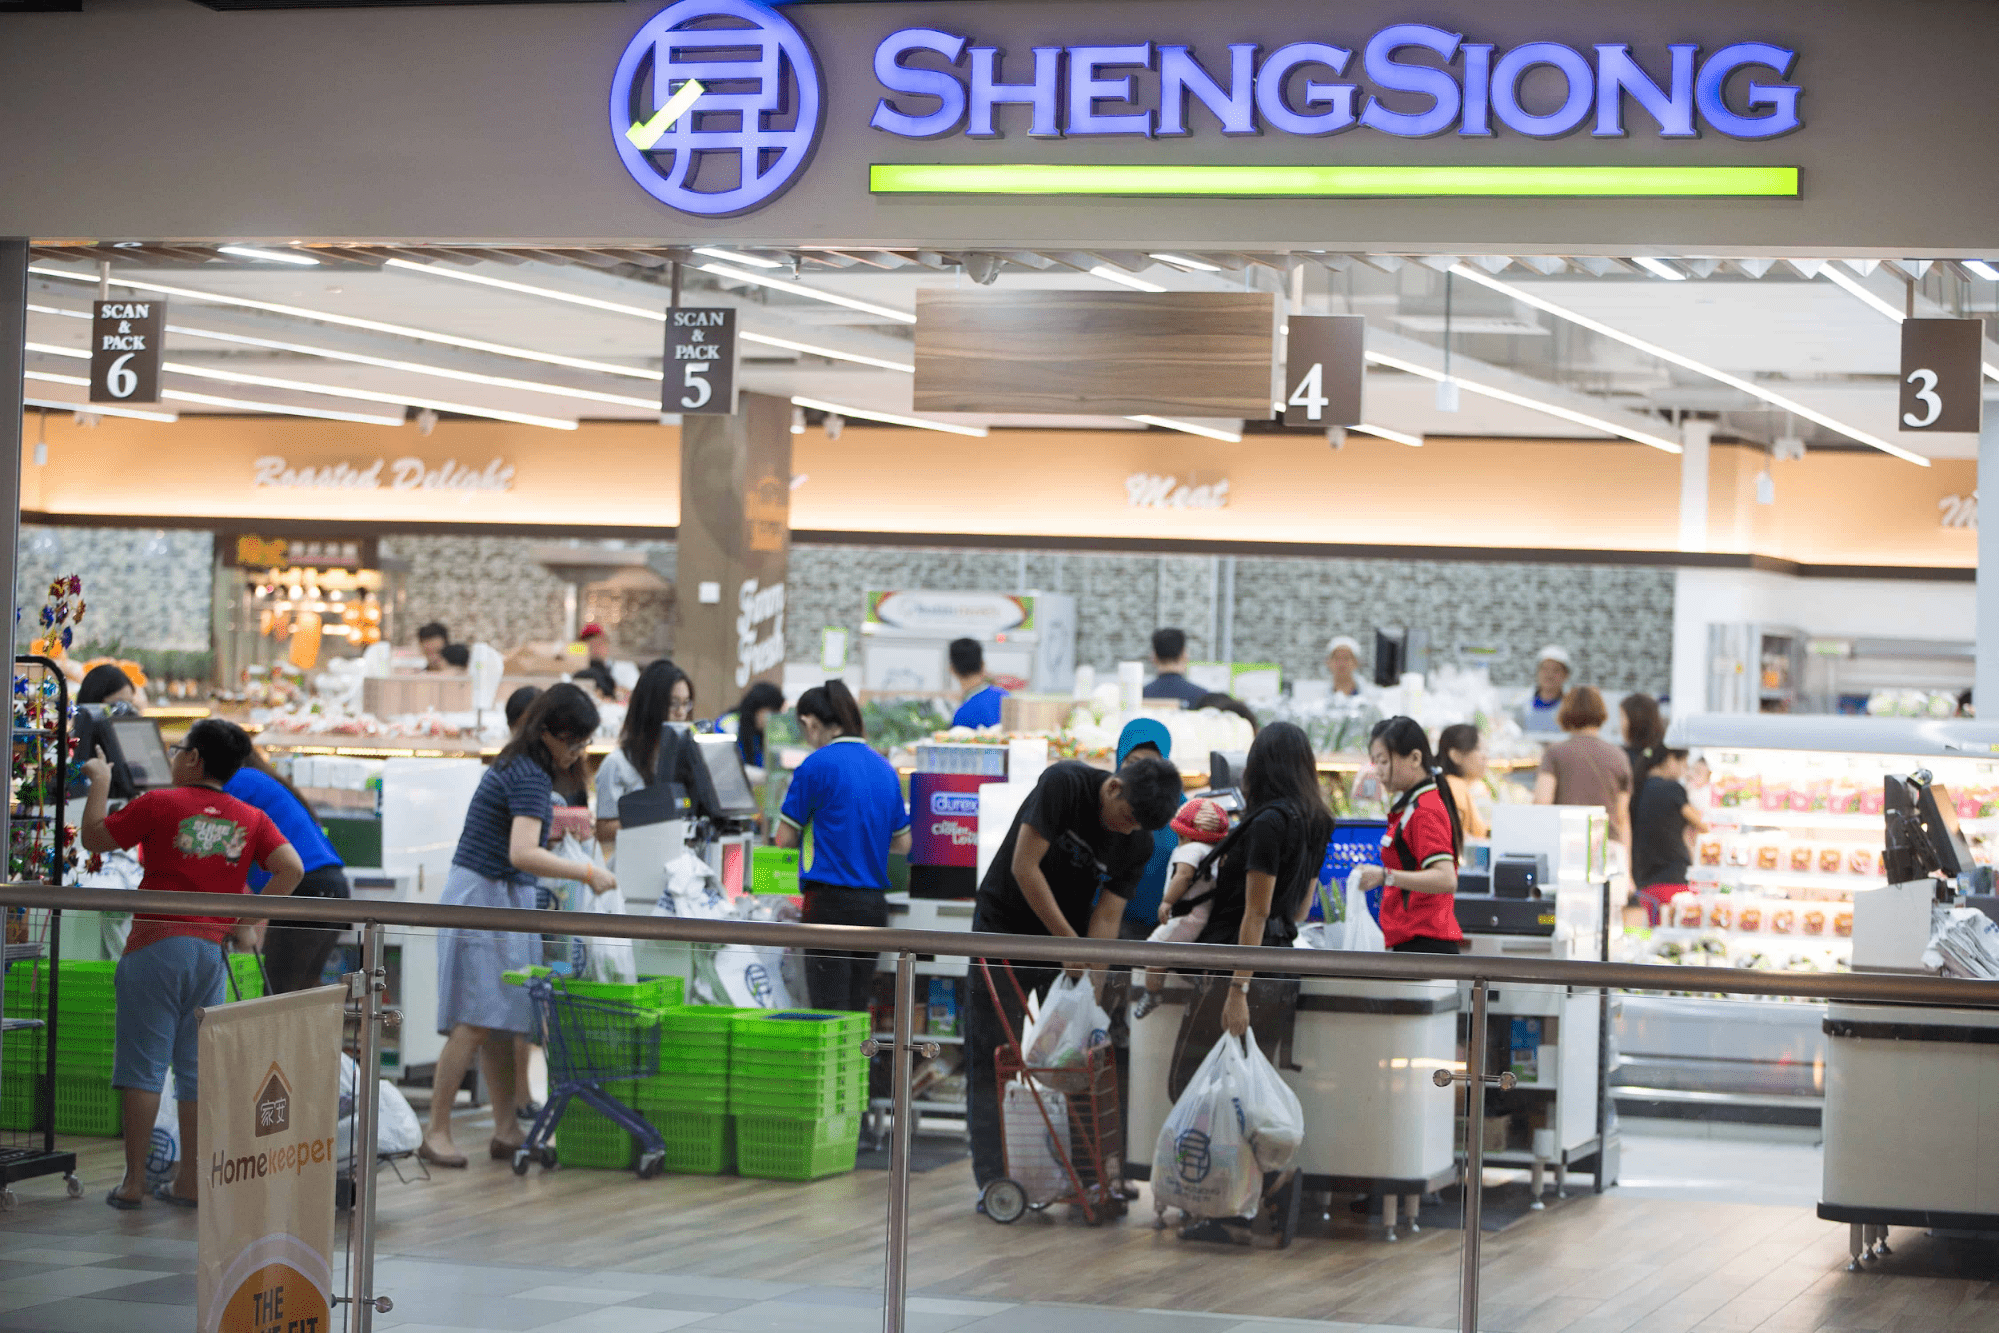 wholesome things singapore 2021 - Sheng Siong